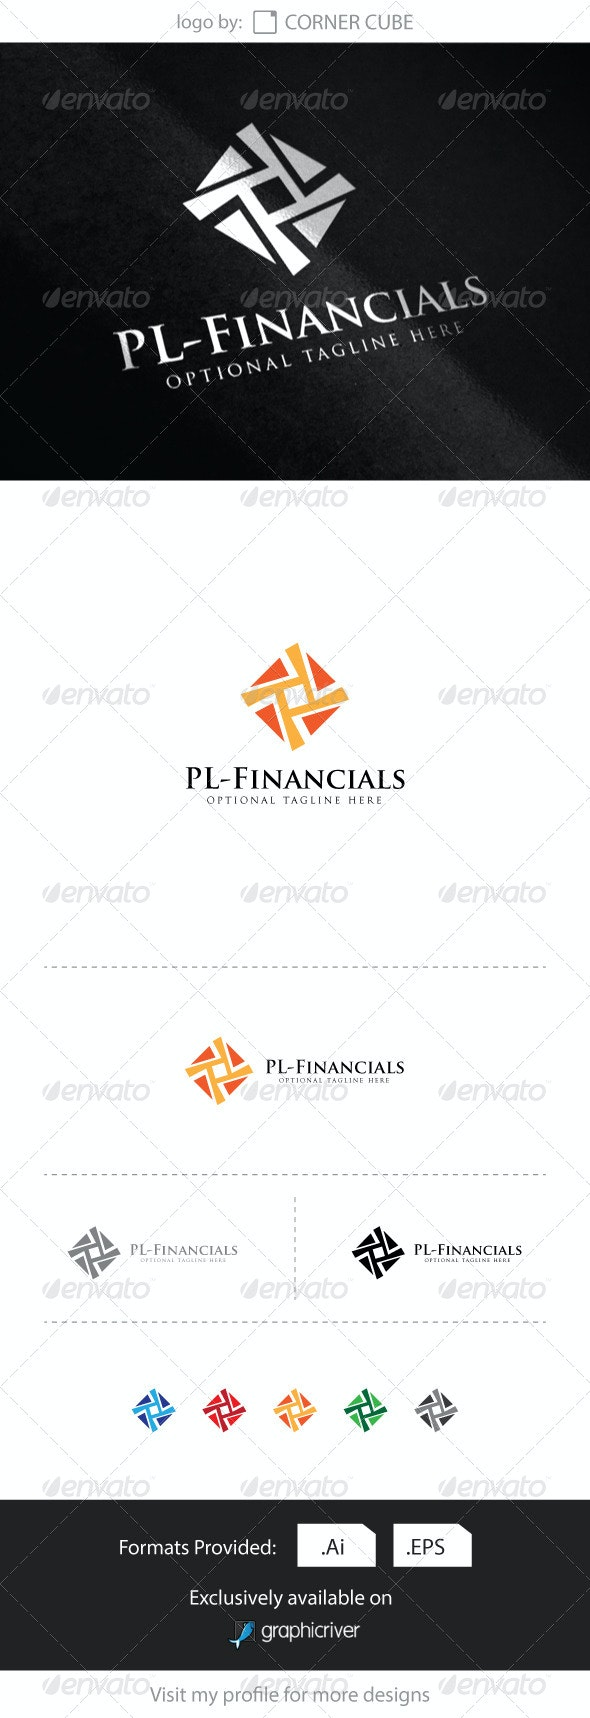 PL-Financials Logo	 - Logo Templates